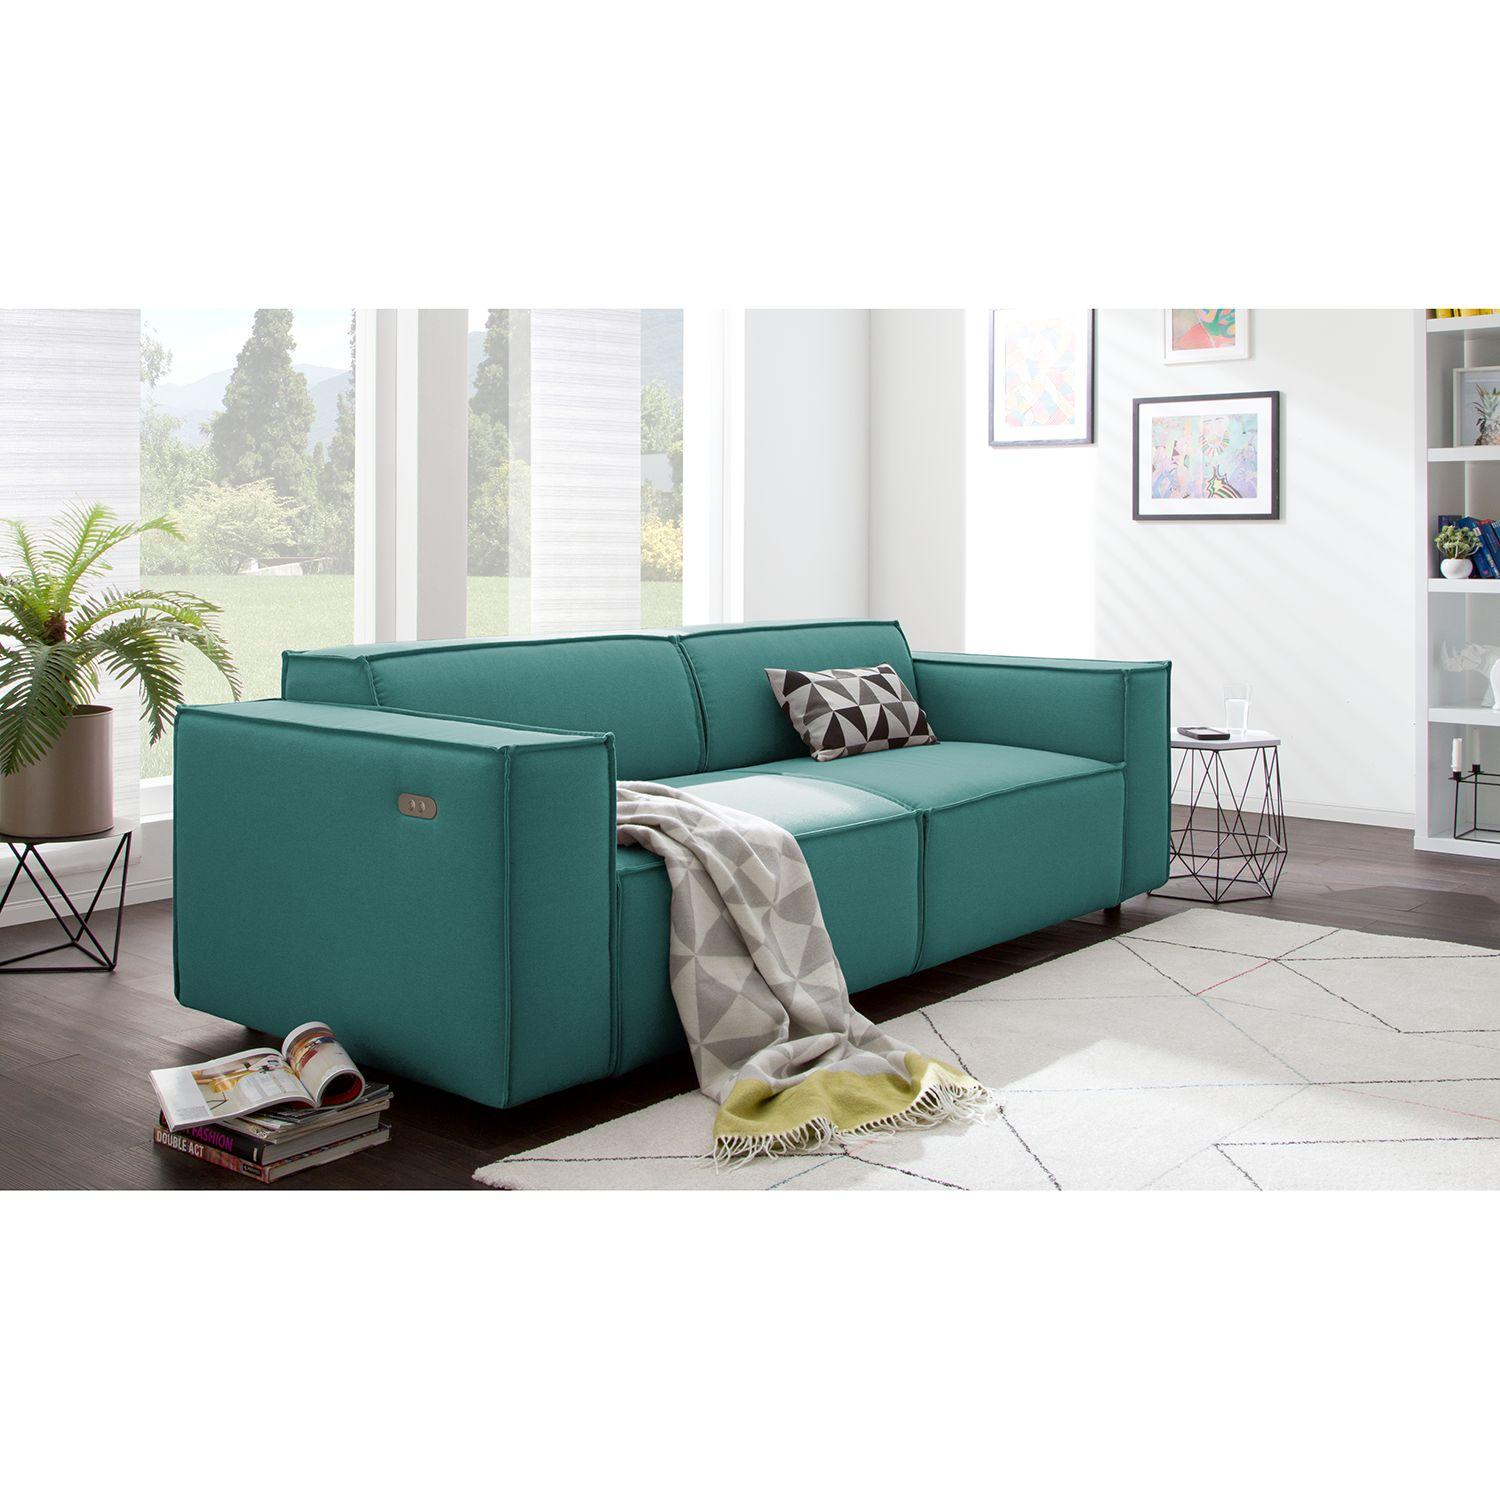 2 5 Sitzer Sofa Mit Relaxfunktion